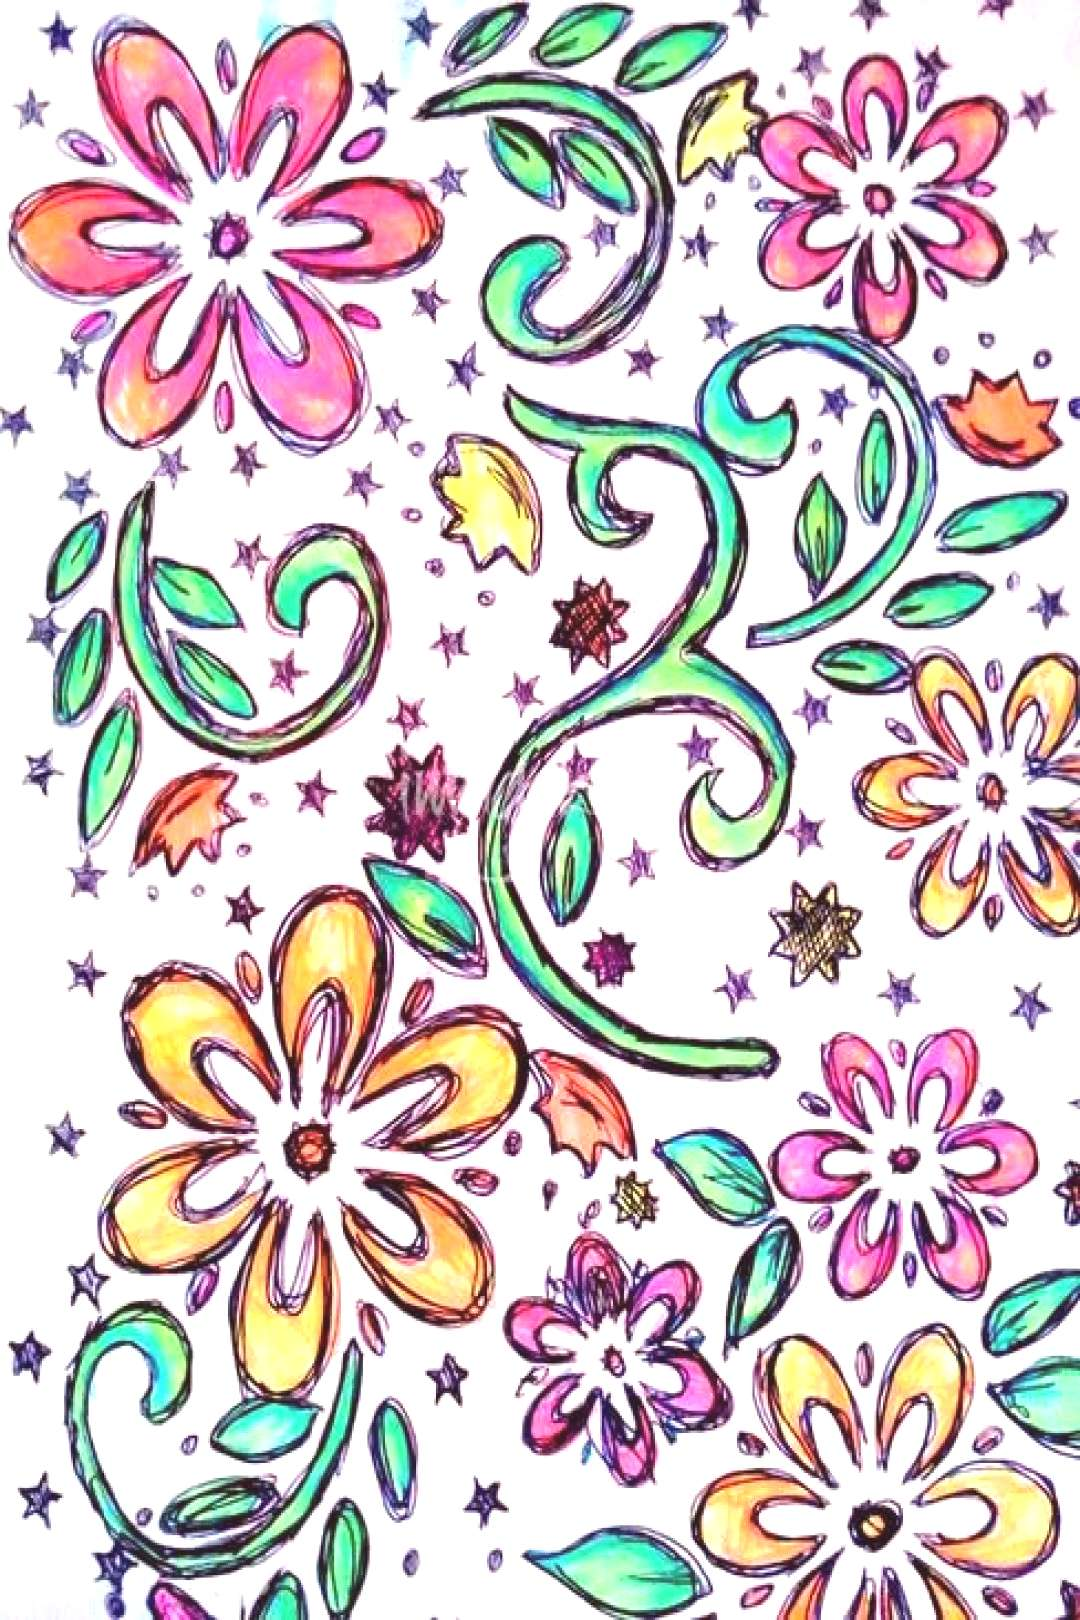 quotNeon flowersquot by KellybeanKreations, 2015 ,